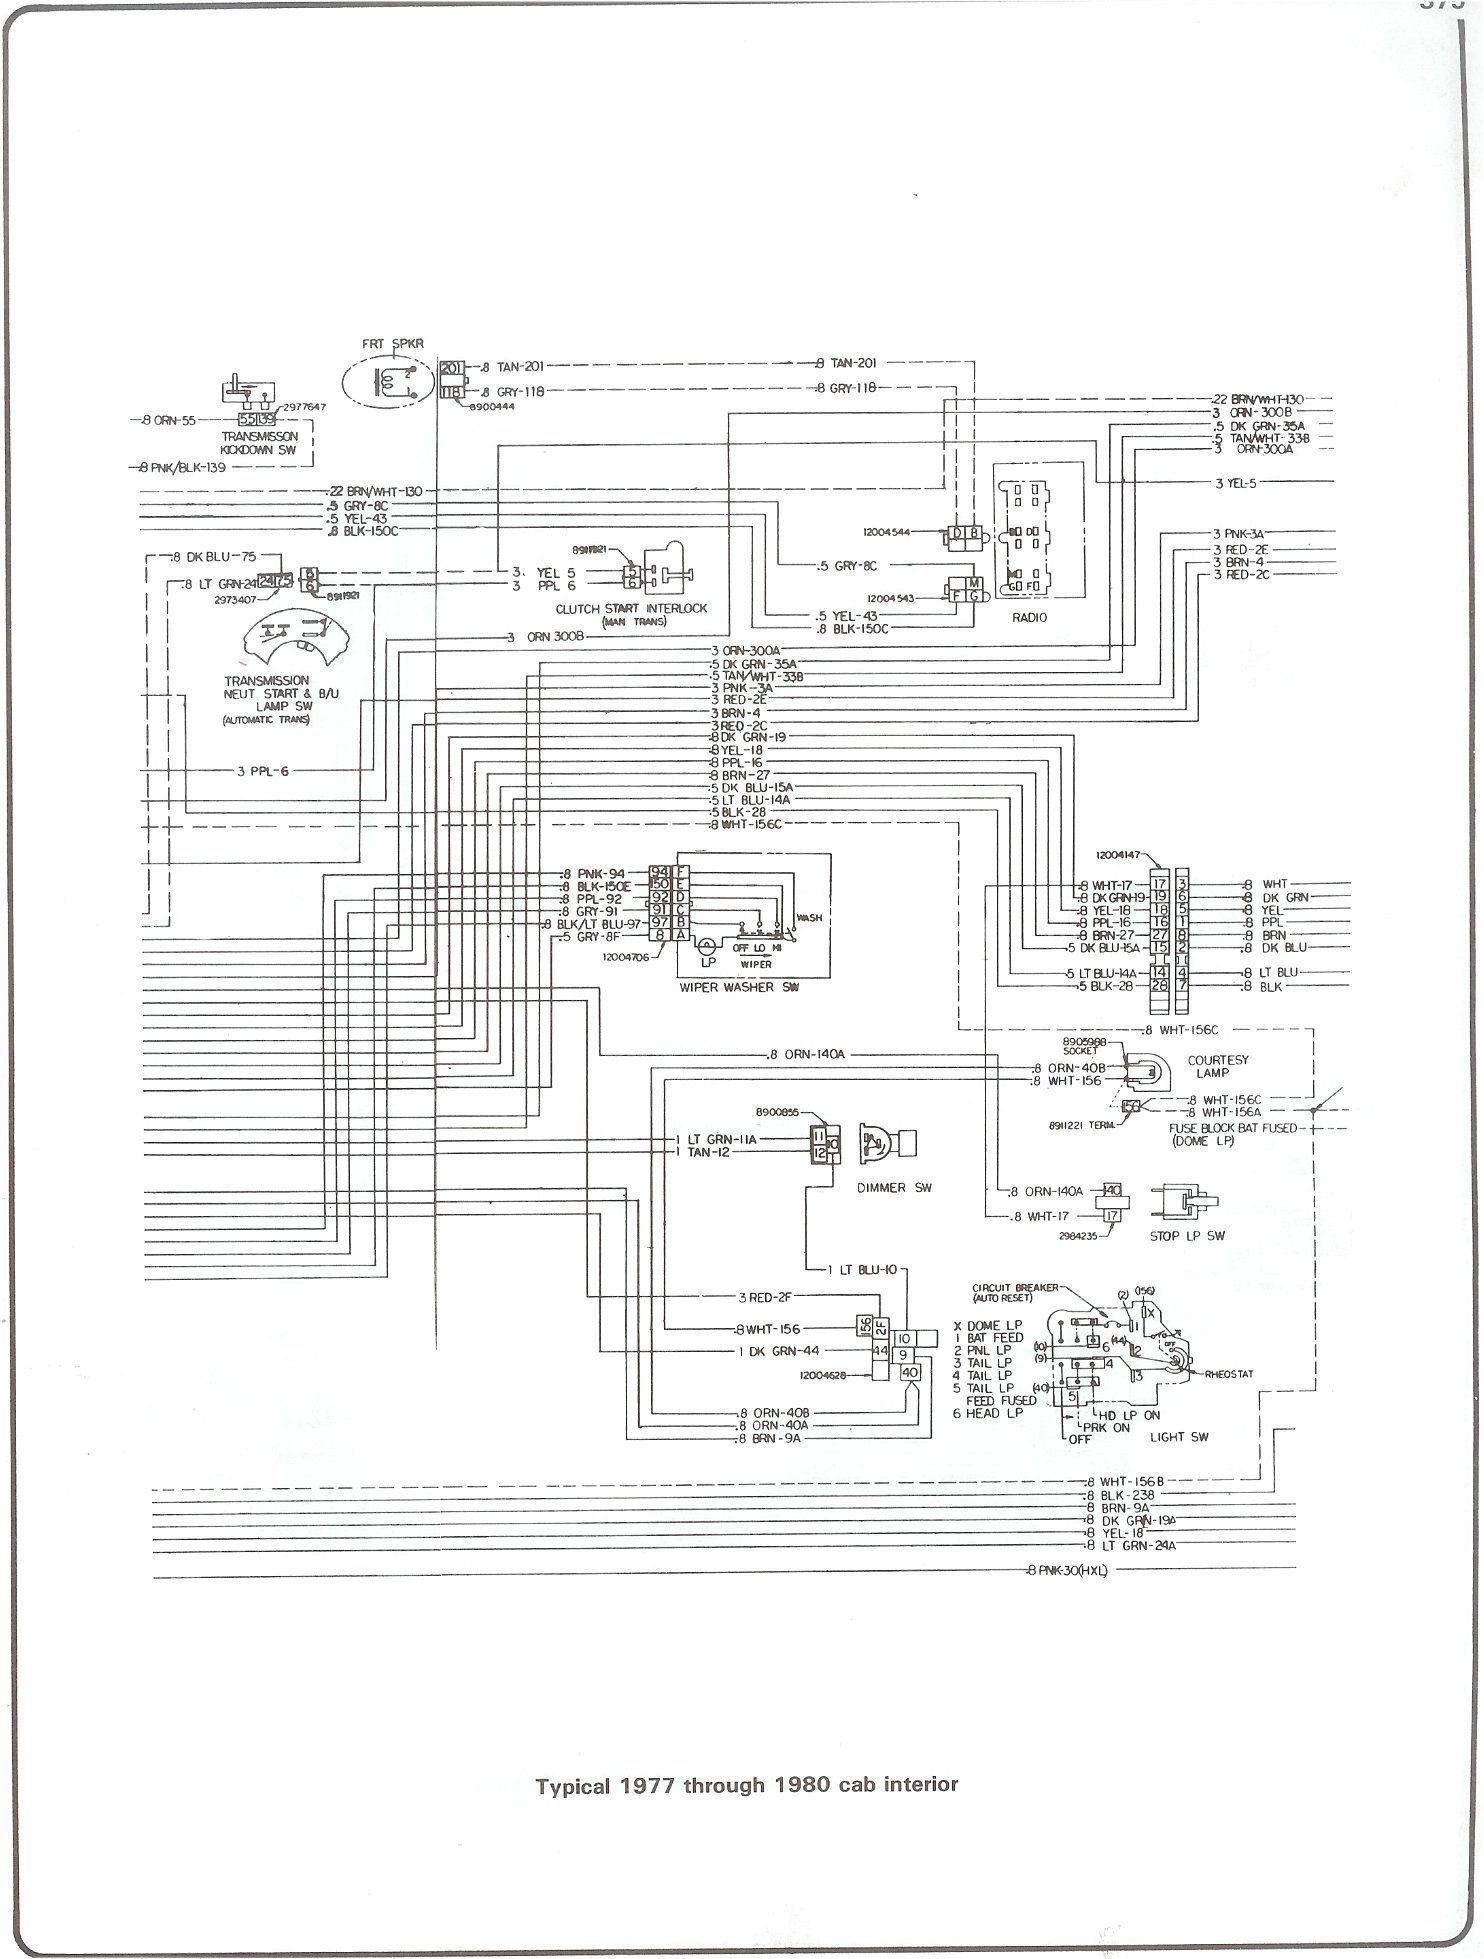 gm painless 1986 blazer wiring diagram wiring diagram rh a18 raepoppweiss de